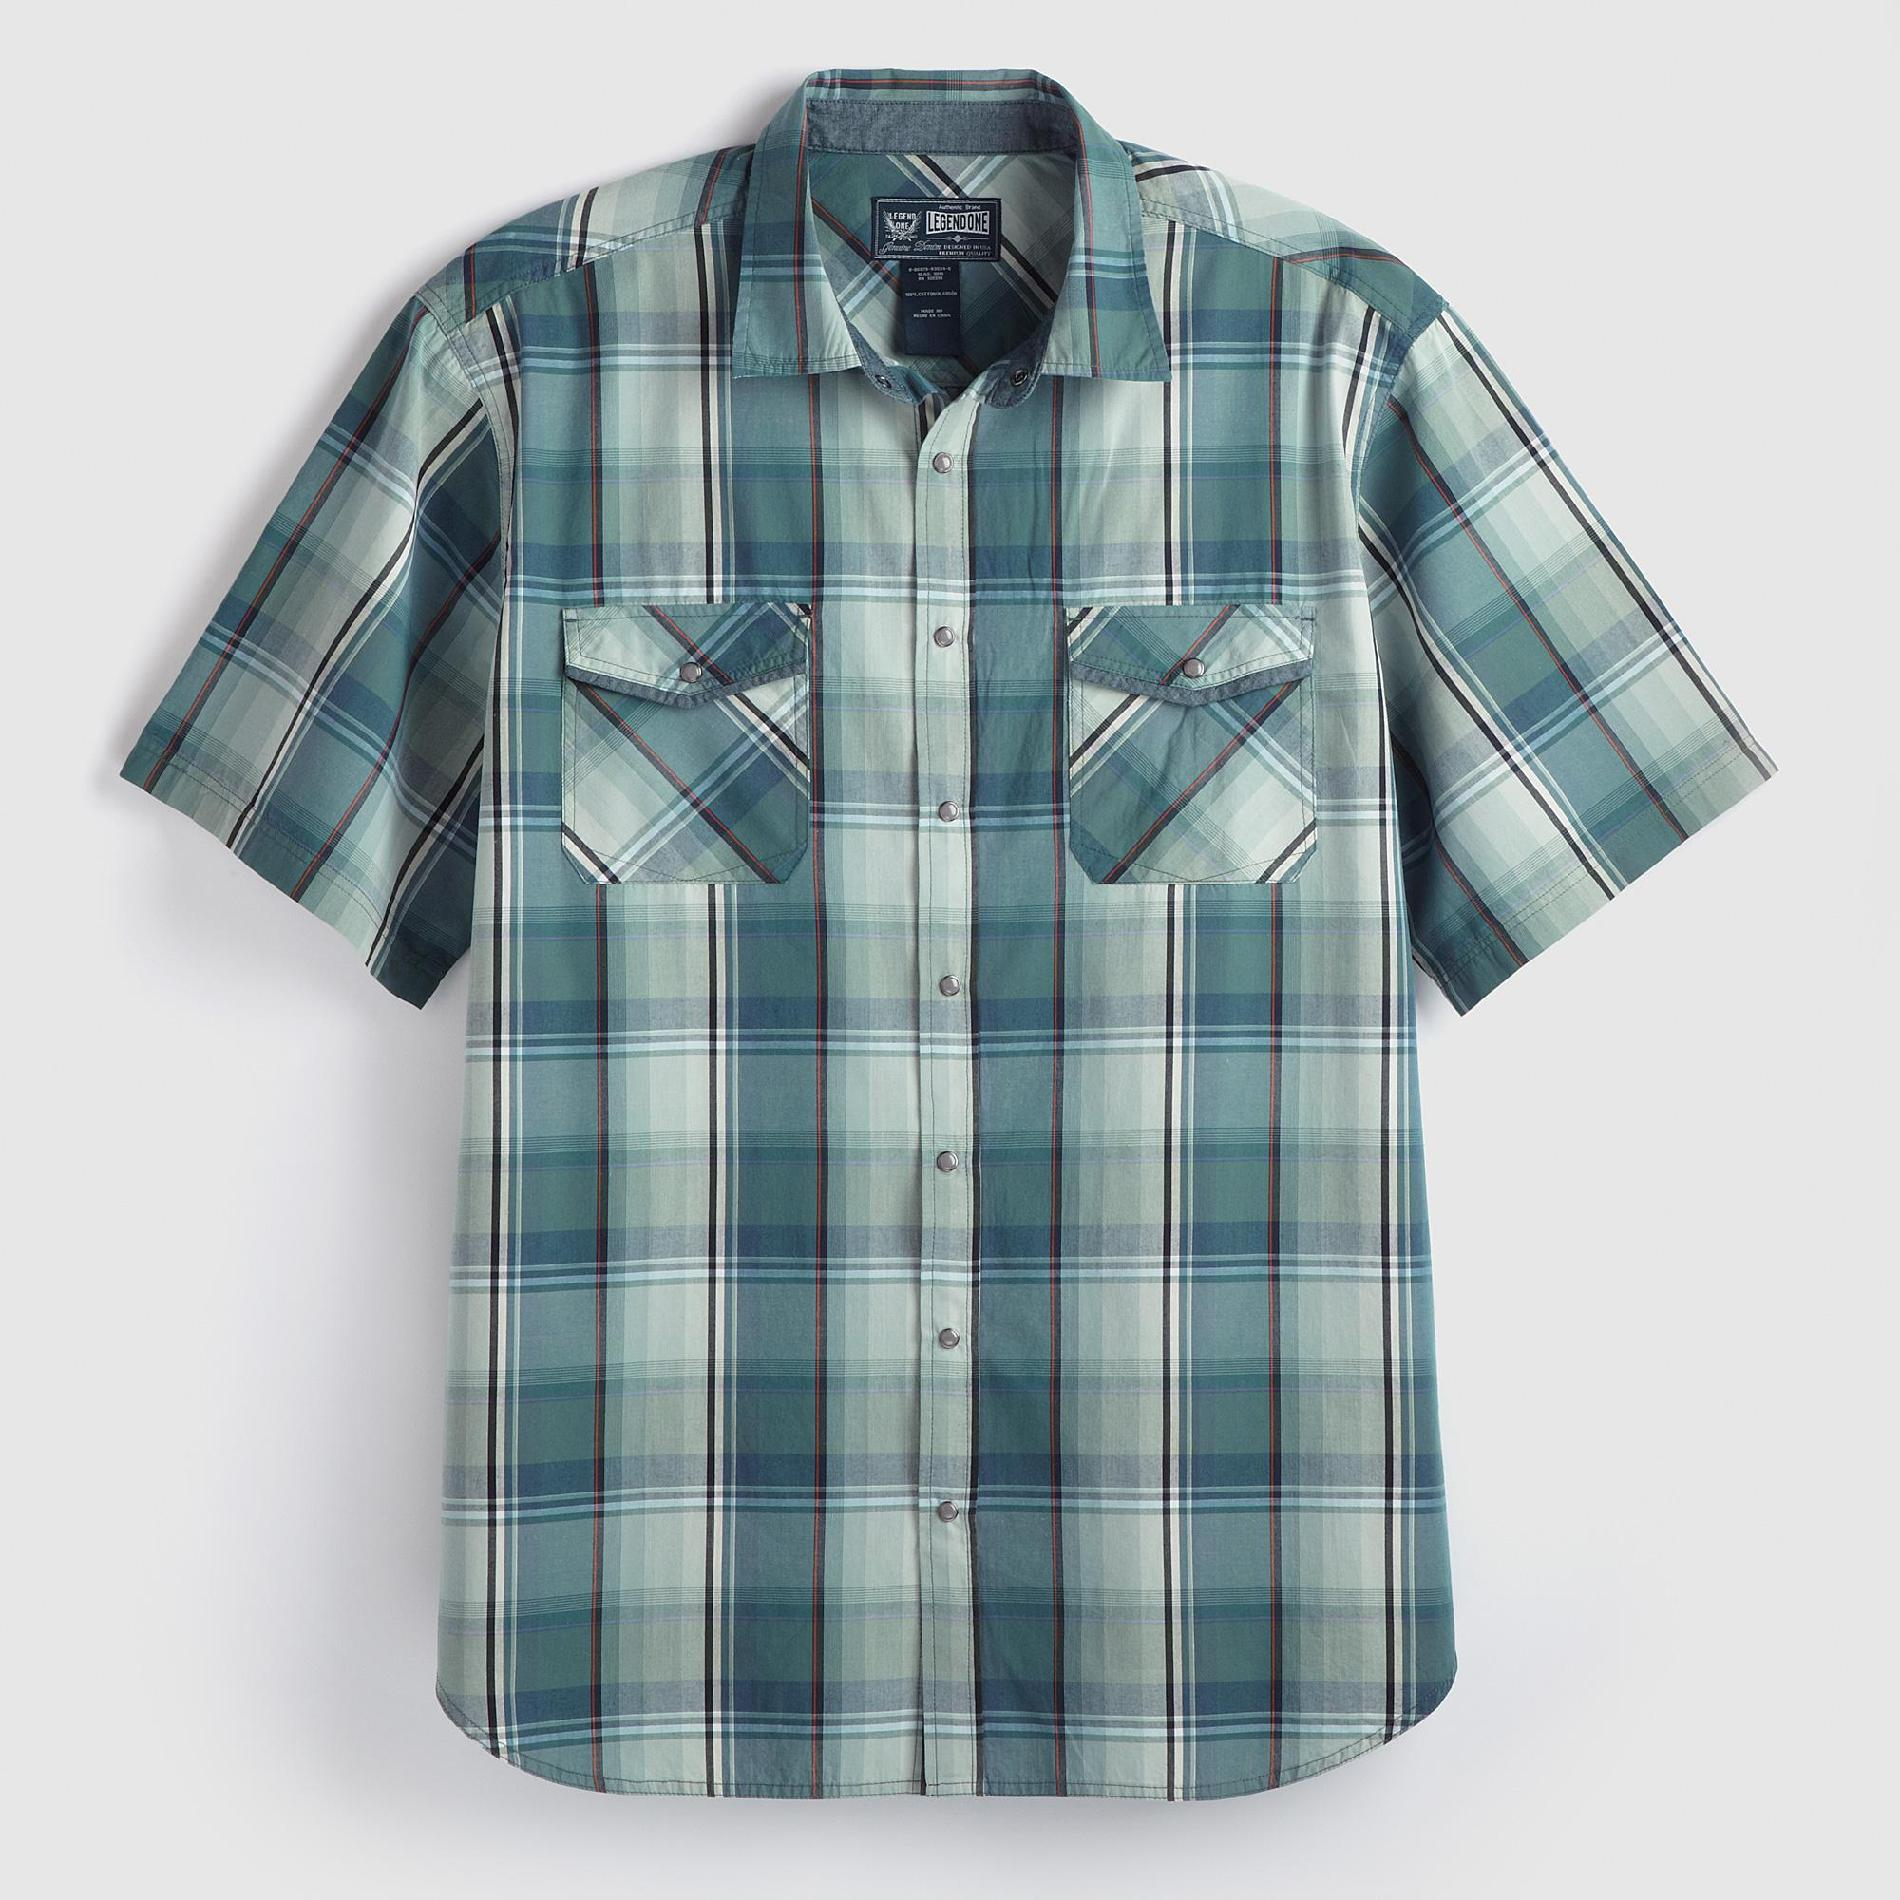 Legend One Men's Big & Tall Woven Shirt at Kmart.com